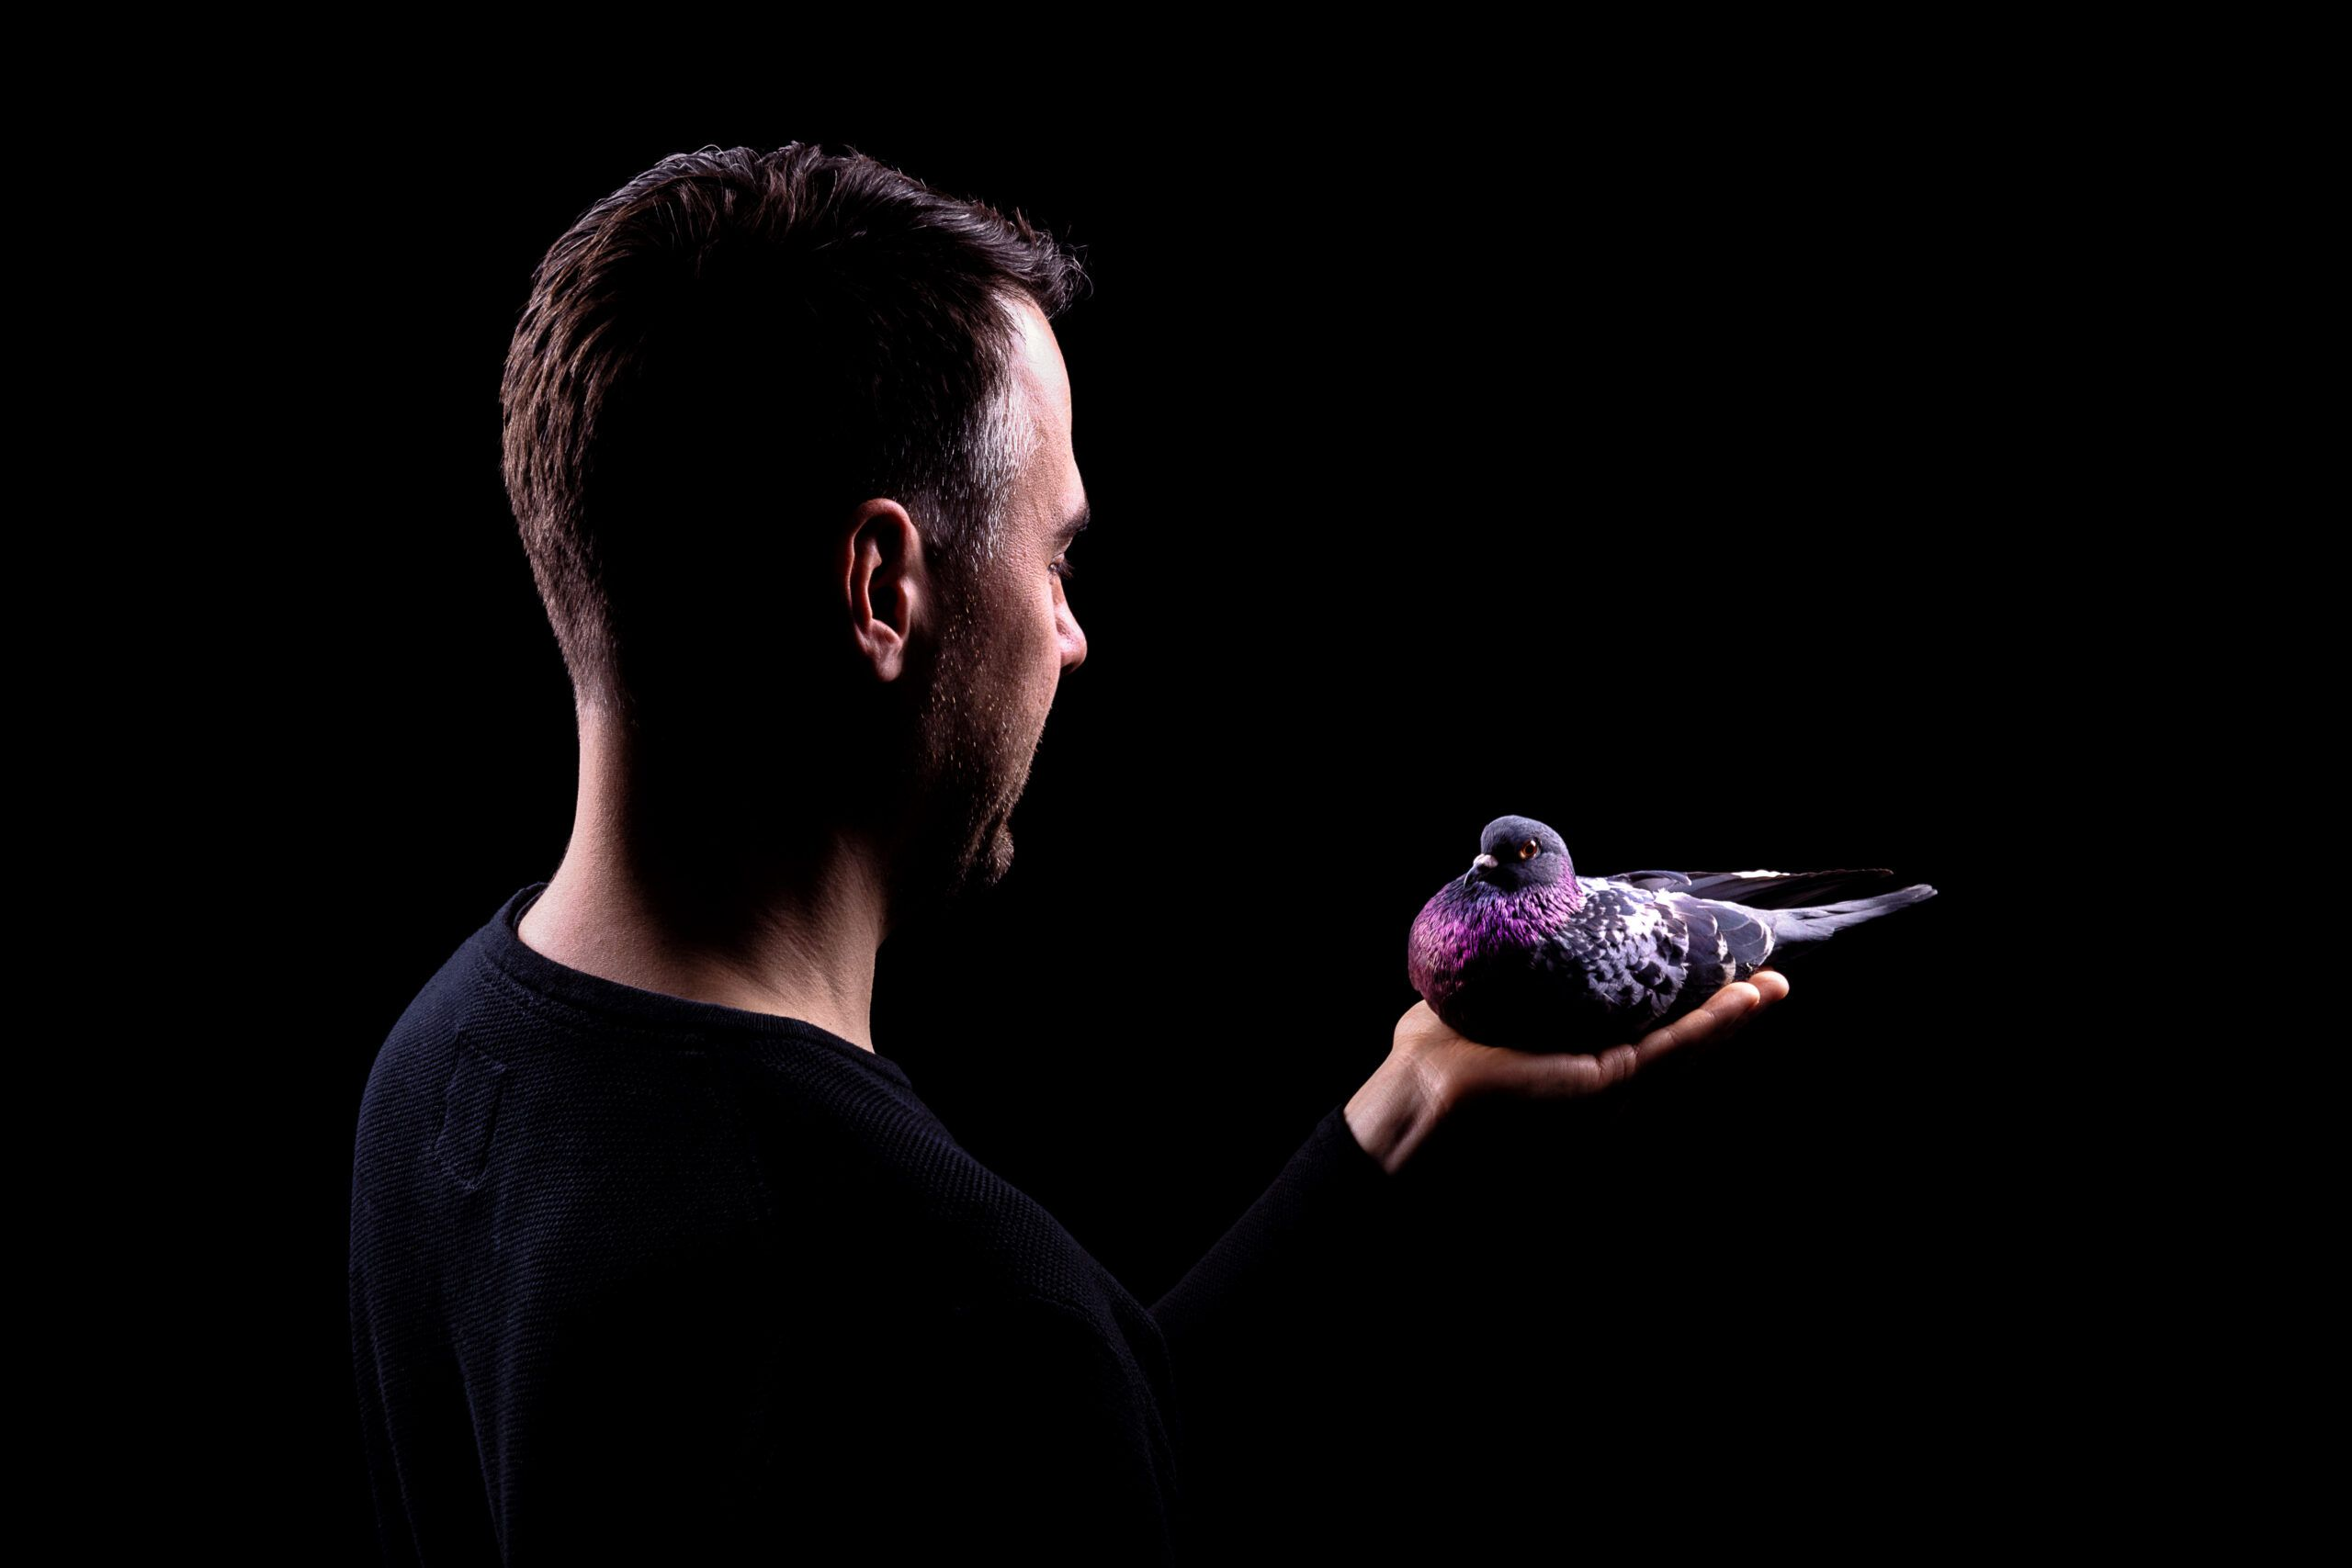 Interview: Stimming on his new album, pigeons, & straying from functionality